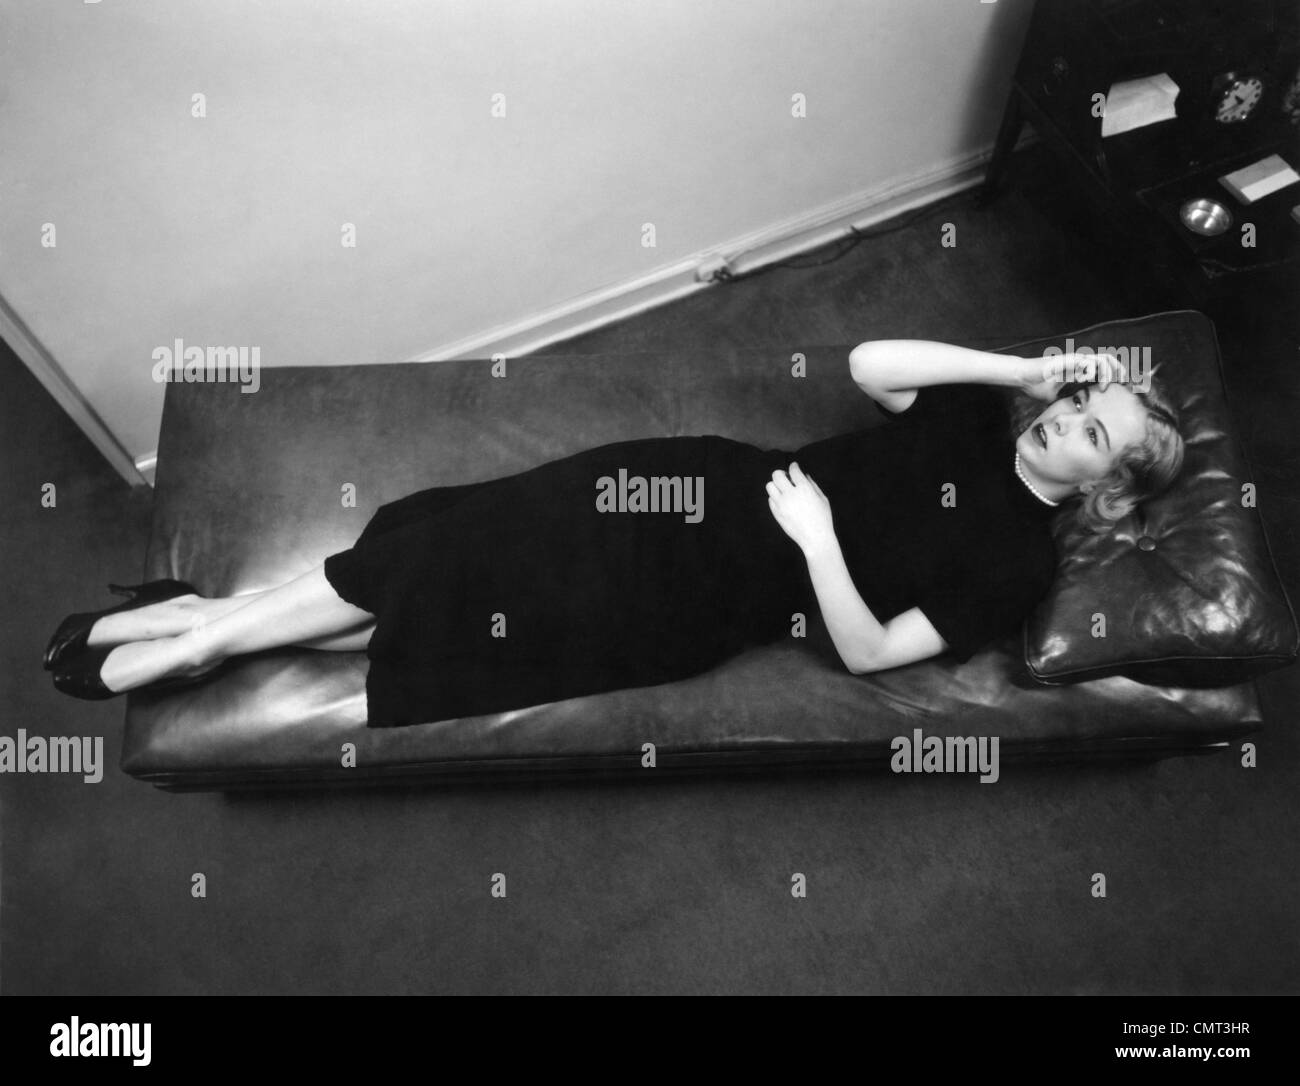 1950s WORRIED WOMAN HAND TO FOREHEAD SEEN FROM ABOVE LYING DOWN ON PSYCHIATRIST THERAPY COUCH - Stock Image